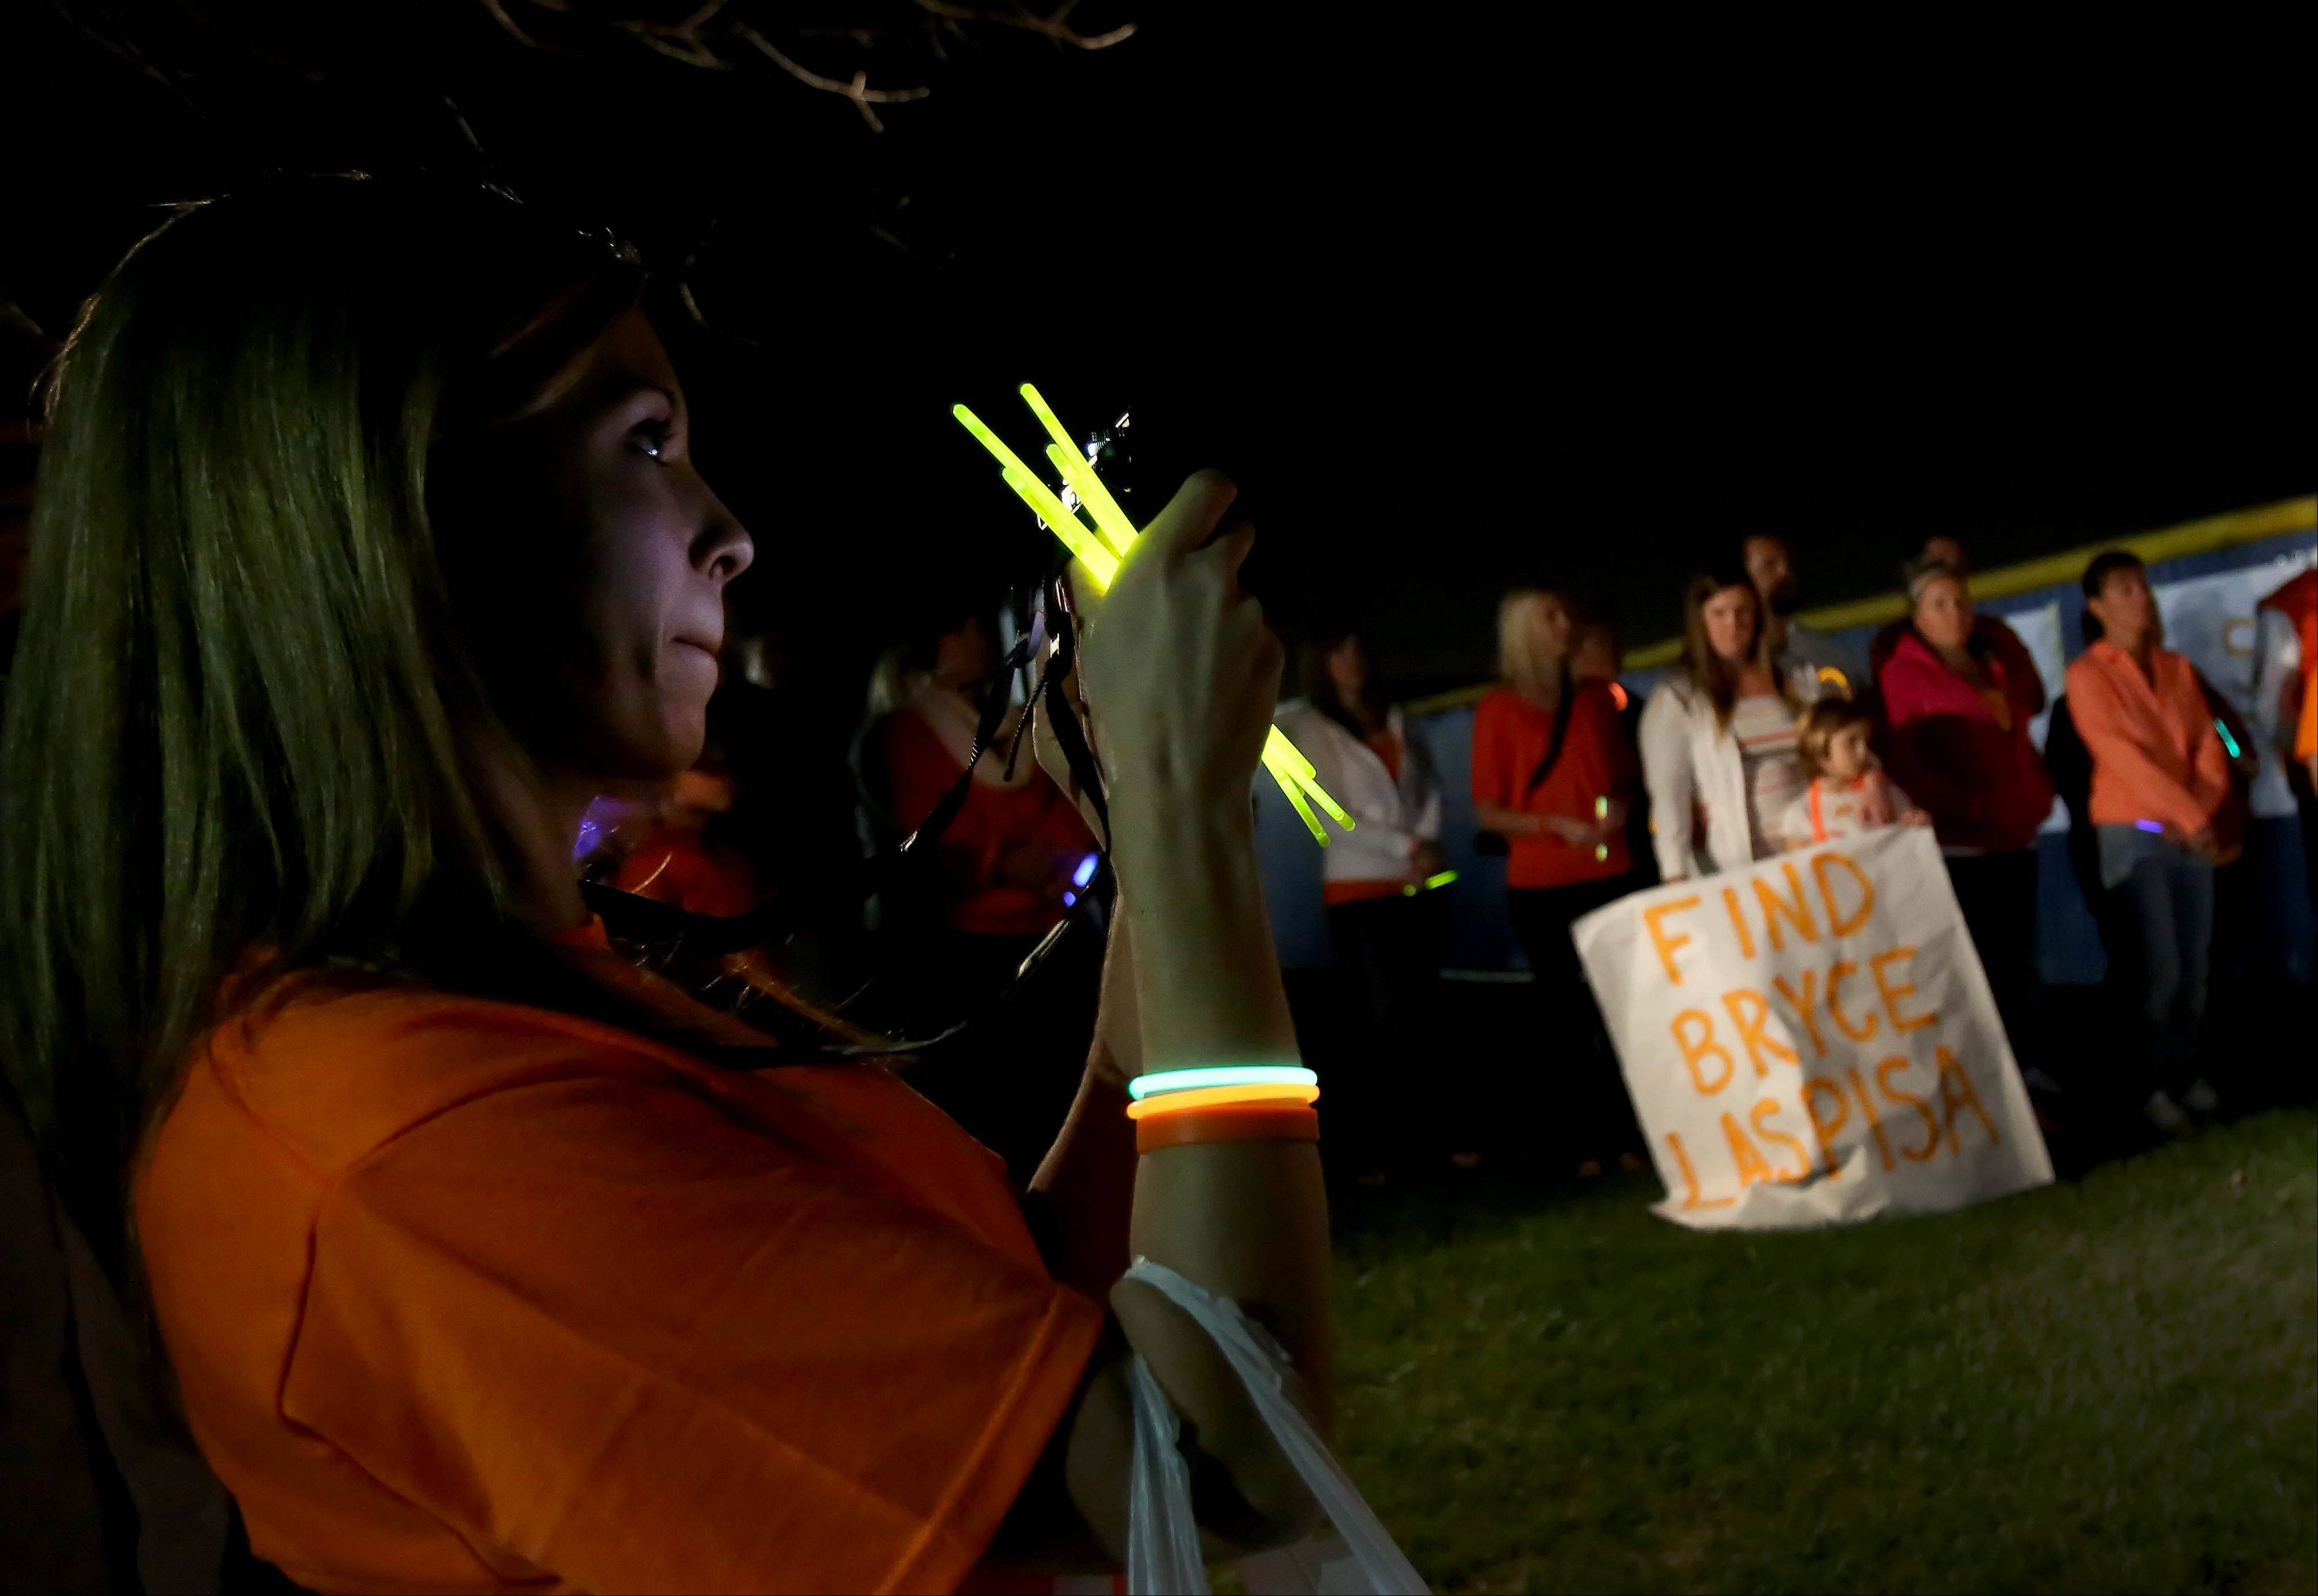 Emily Barenbrugge, who used to babysit for Bryce Laspisa and helped to organize the vigil, holds a glow stick during a vigil for the missing Naperville Central High School graduate at Frontier Park in Naperville on Monday. Participants held glow sticks or cell phone lights and wore white or orange to �light the way home� for Laspisa, a 19-year-old who went missing Aug. 30 in California. This is one of three vigils his parents are organizing to honor the teen who has been missing for a month.